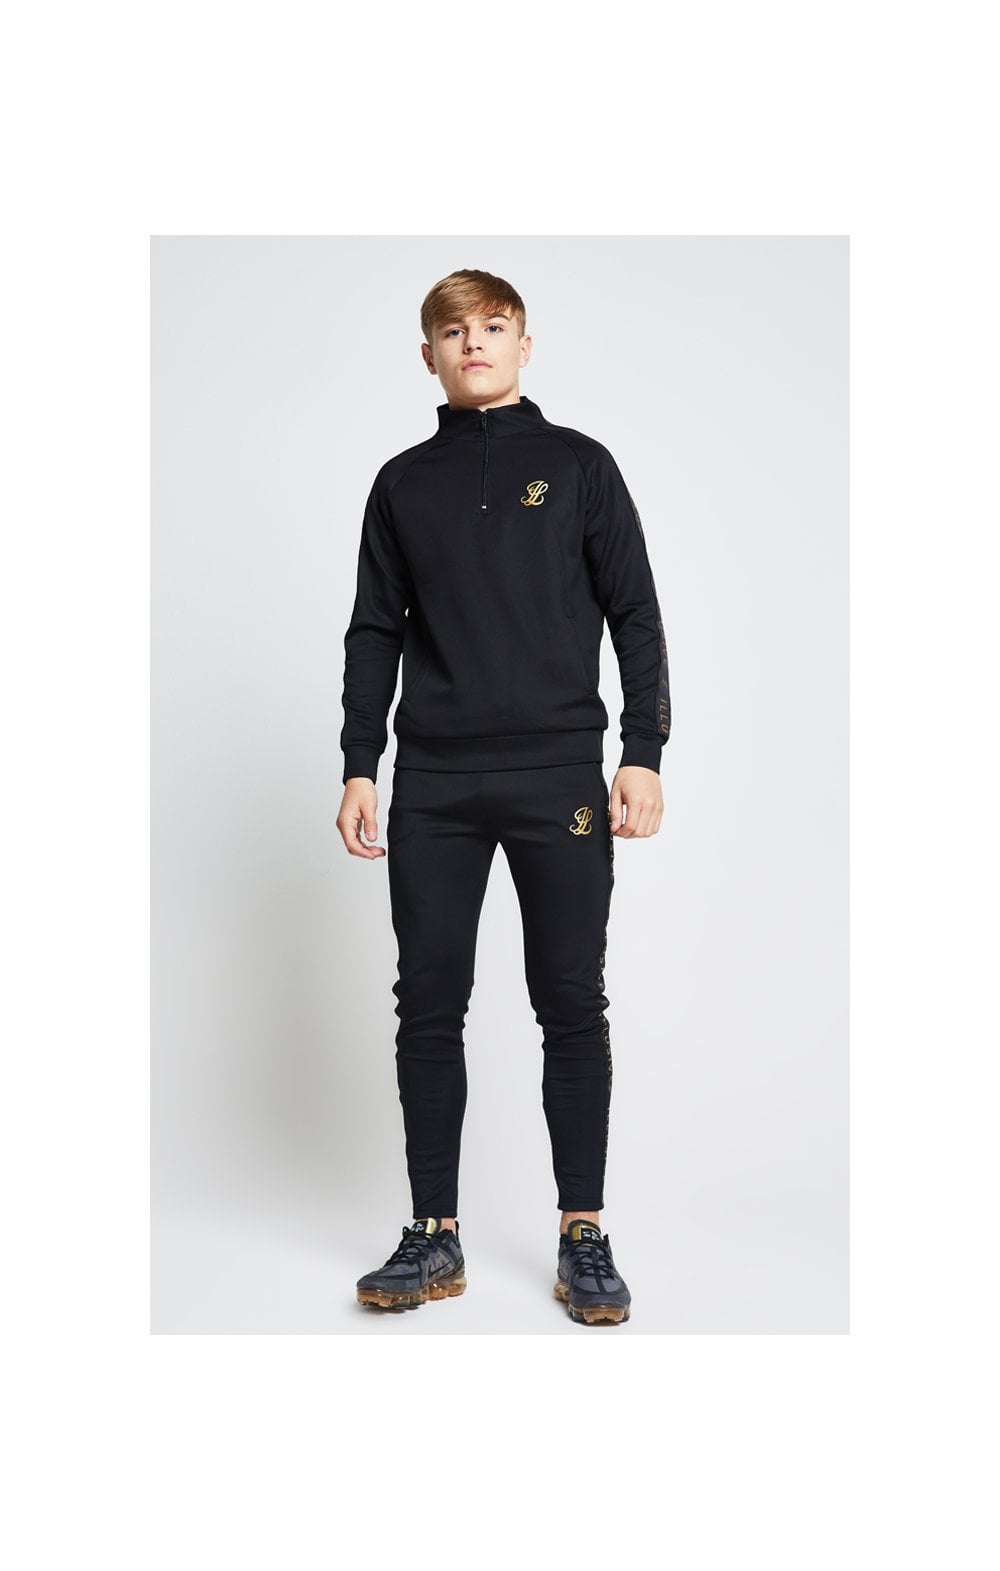 Illusive London Funnel Neck 1/4 Zip Hoodie - Black (2)